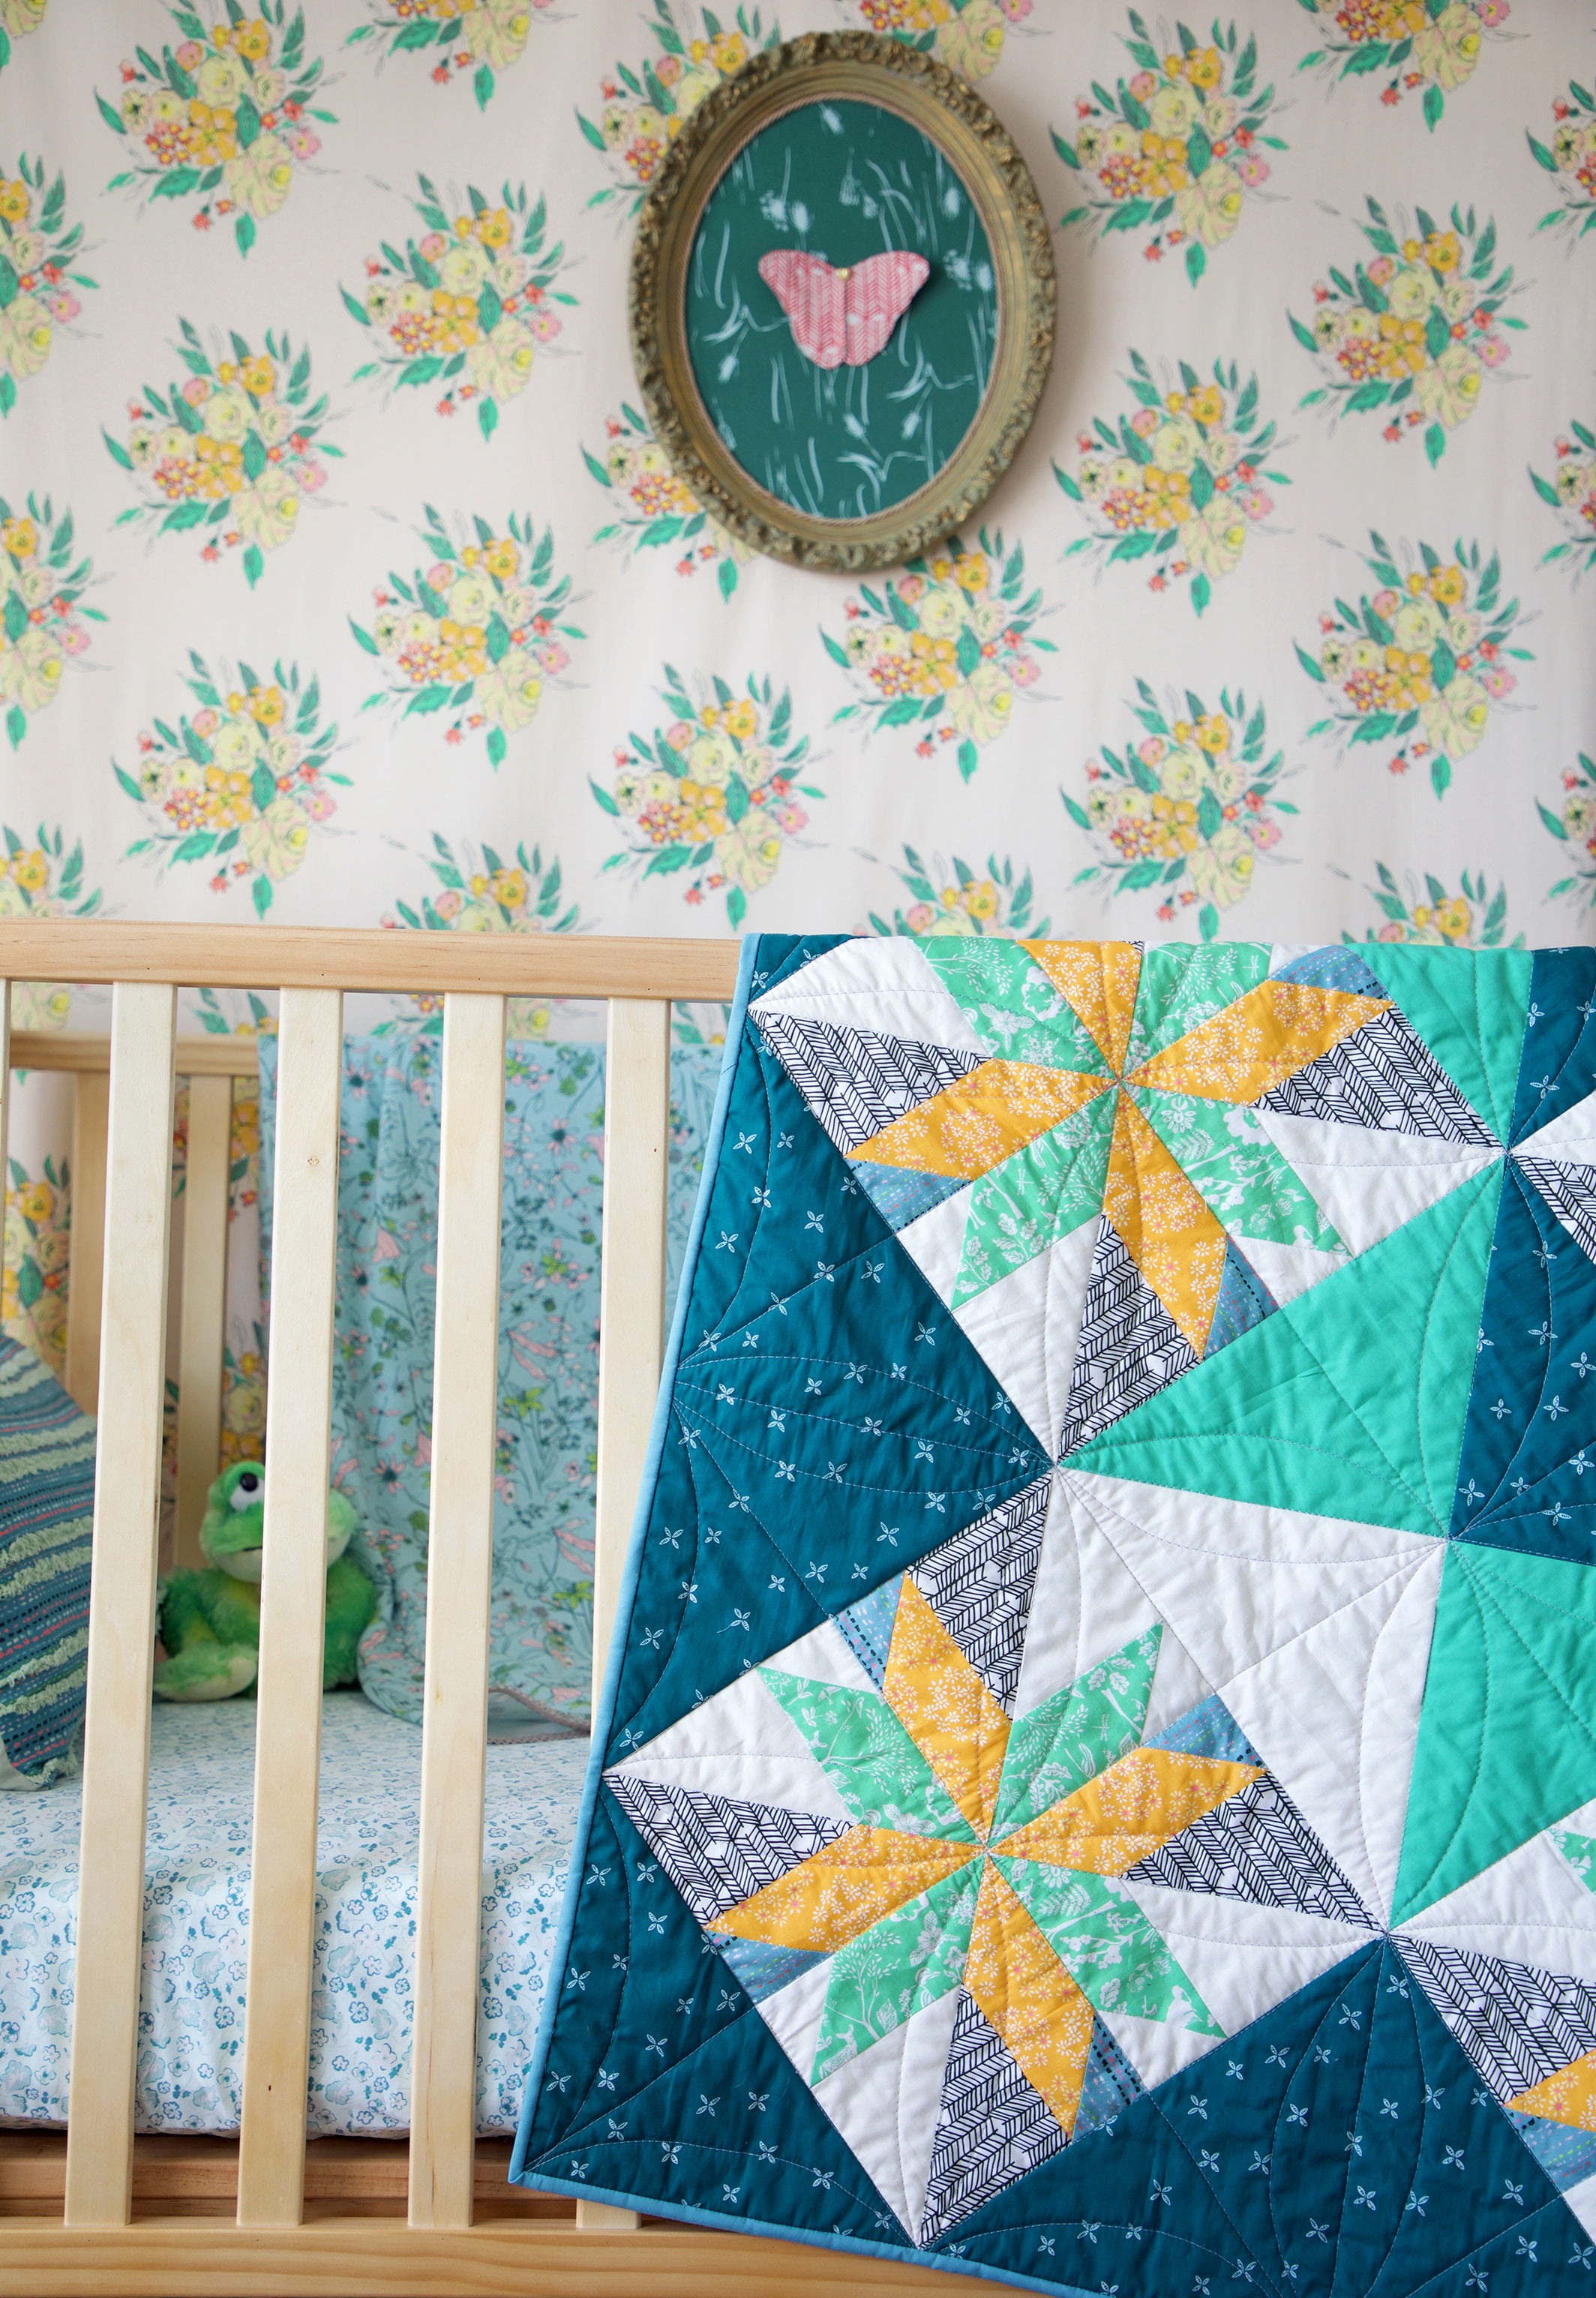 Star Light quilt on crib.jpg